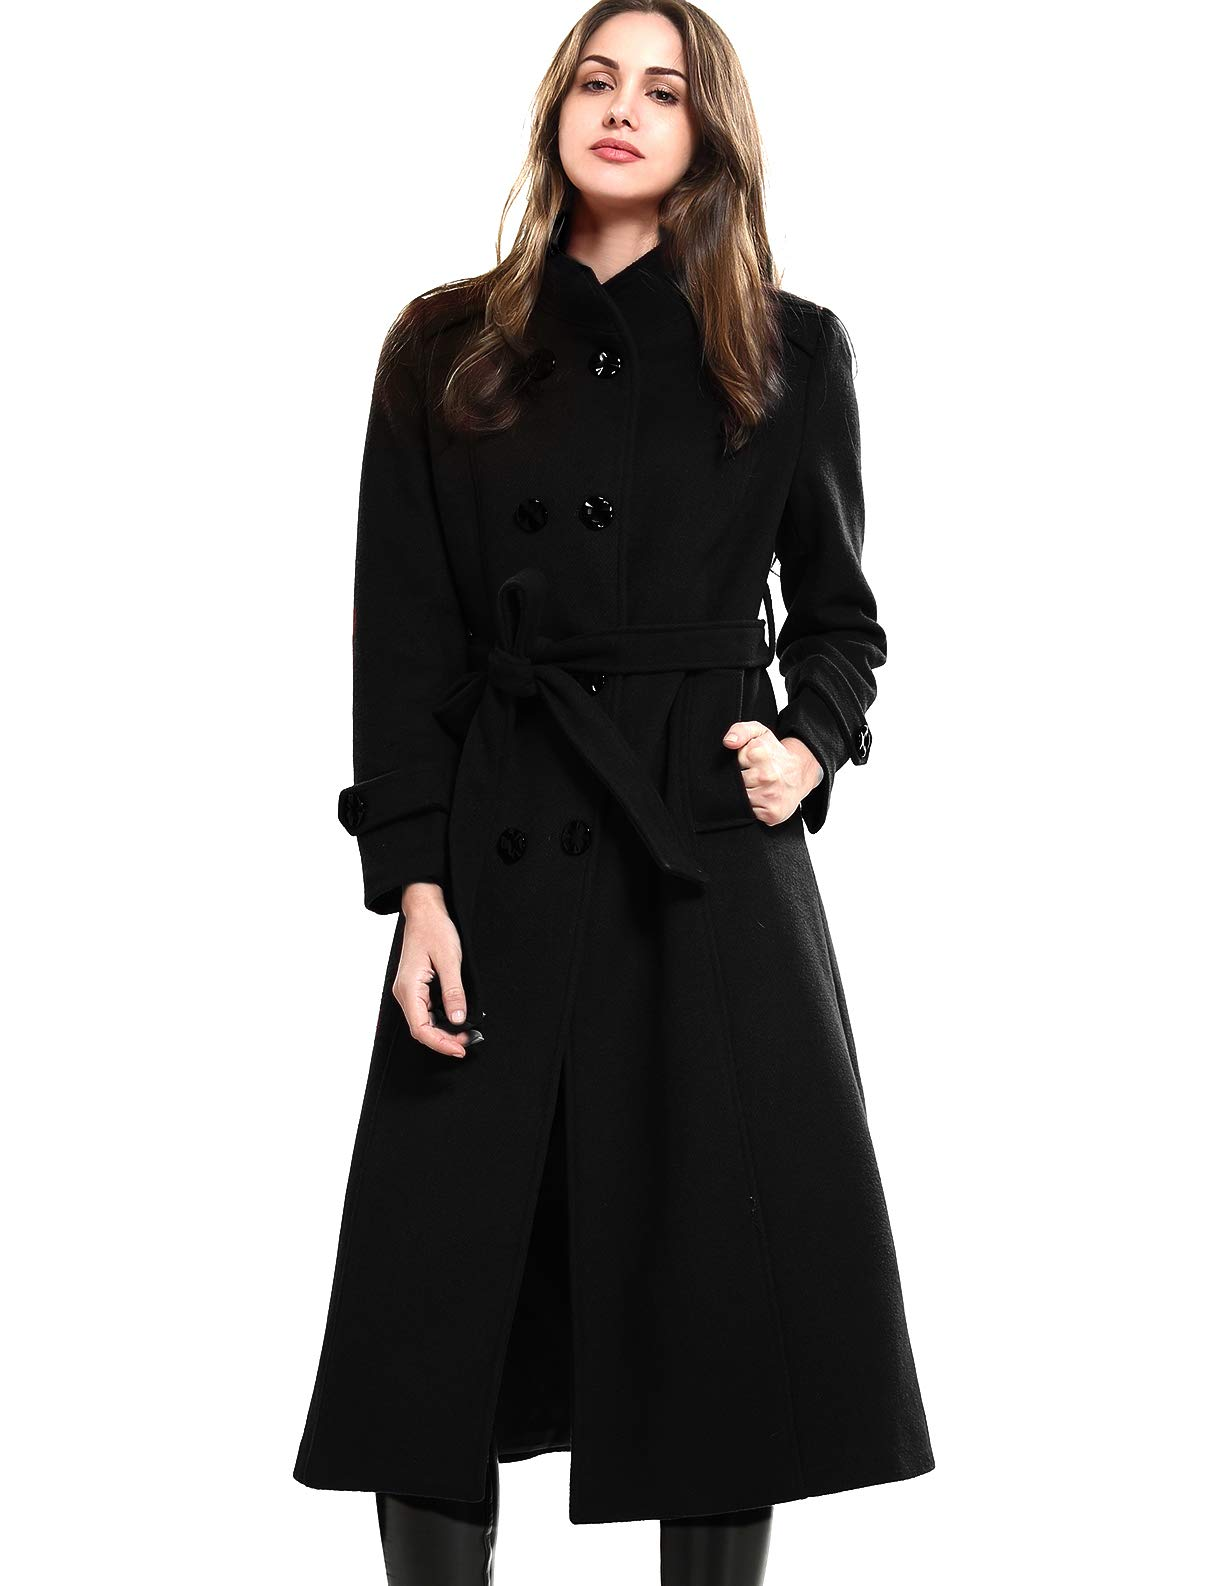 Escalier Women's Wool Trench Coat Double-Breasted Jacket with Belts Black XL by Escalier